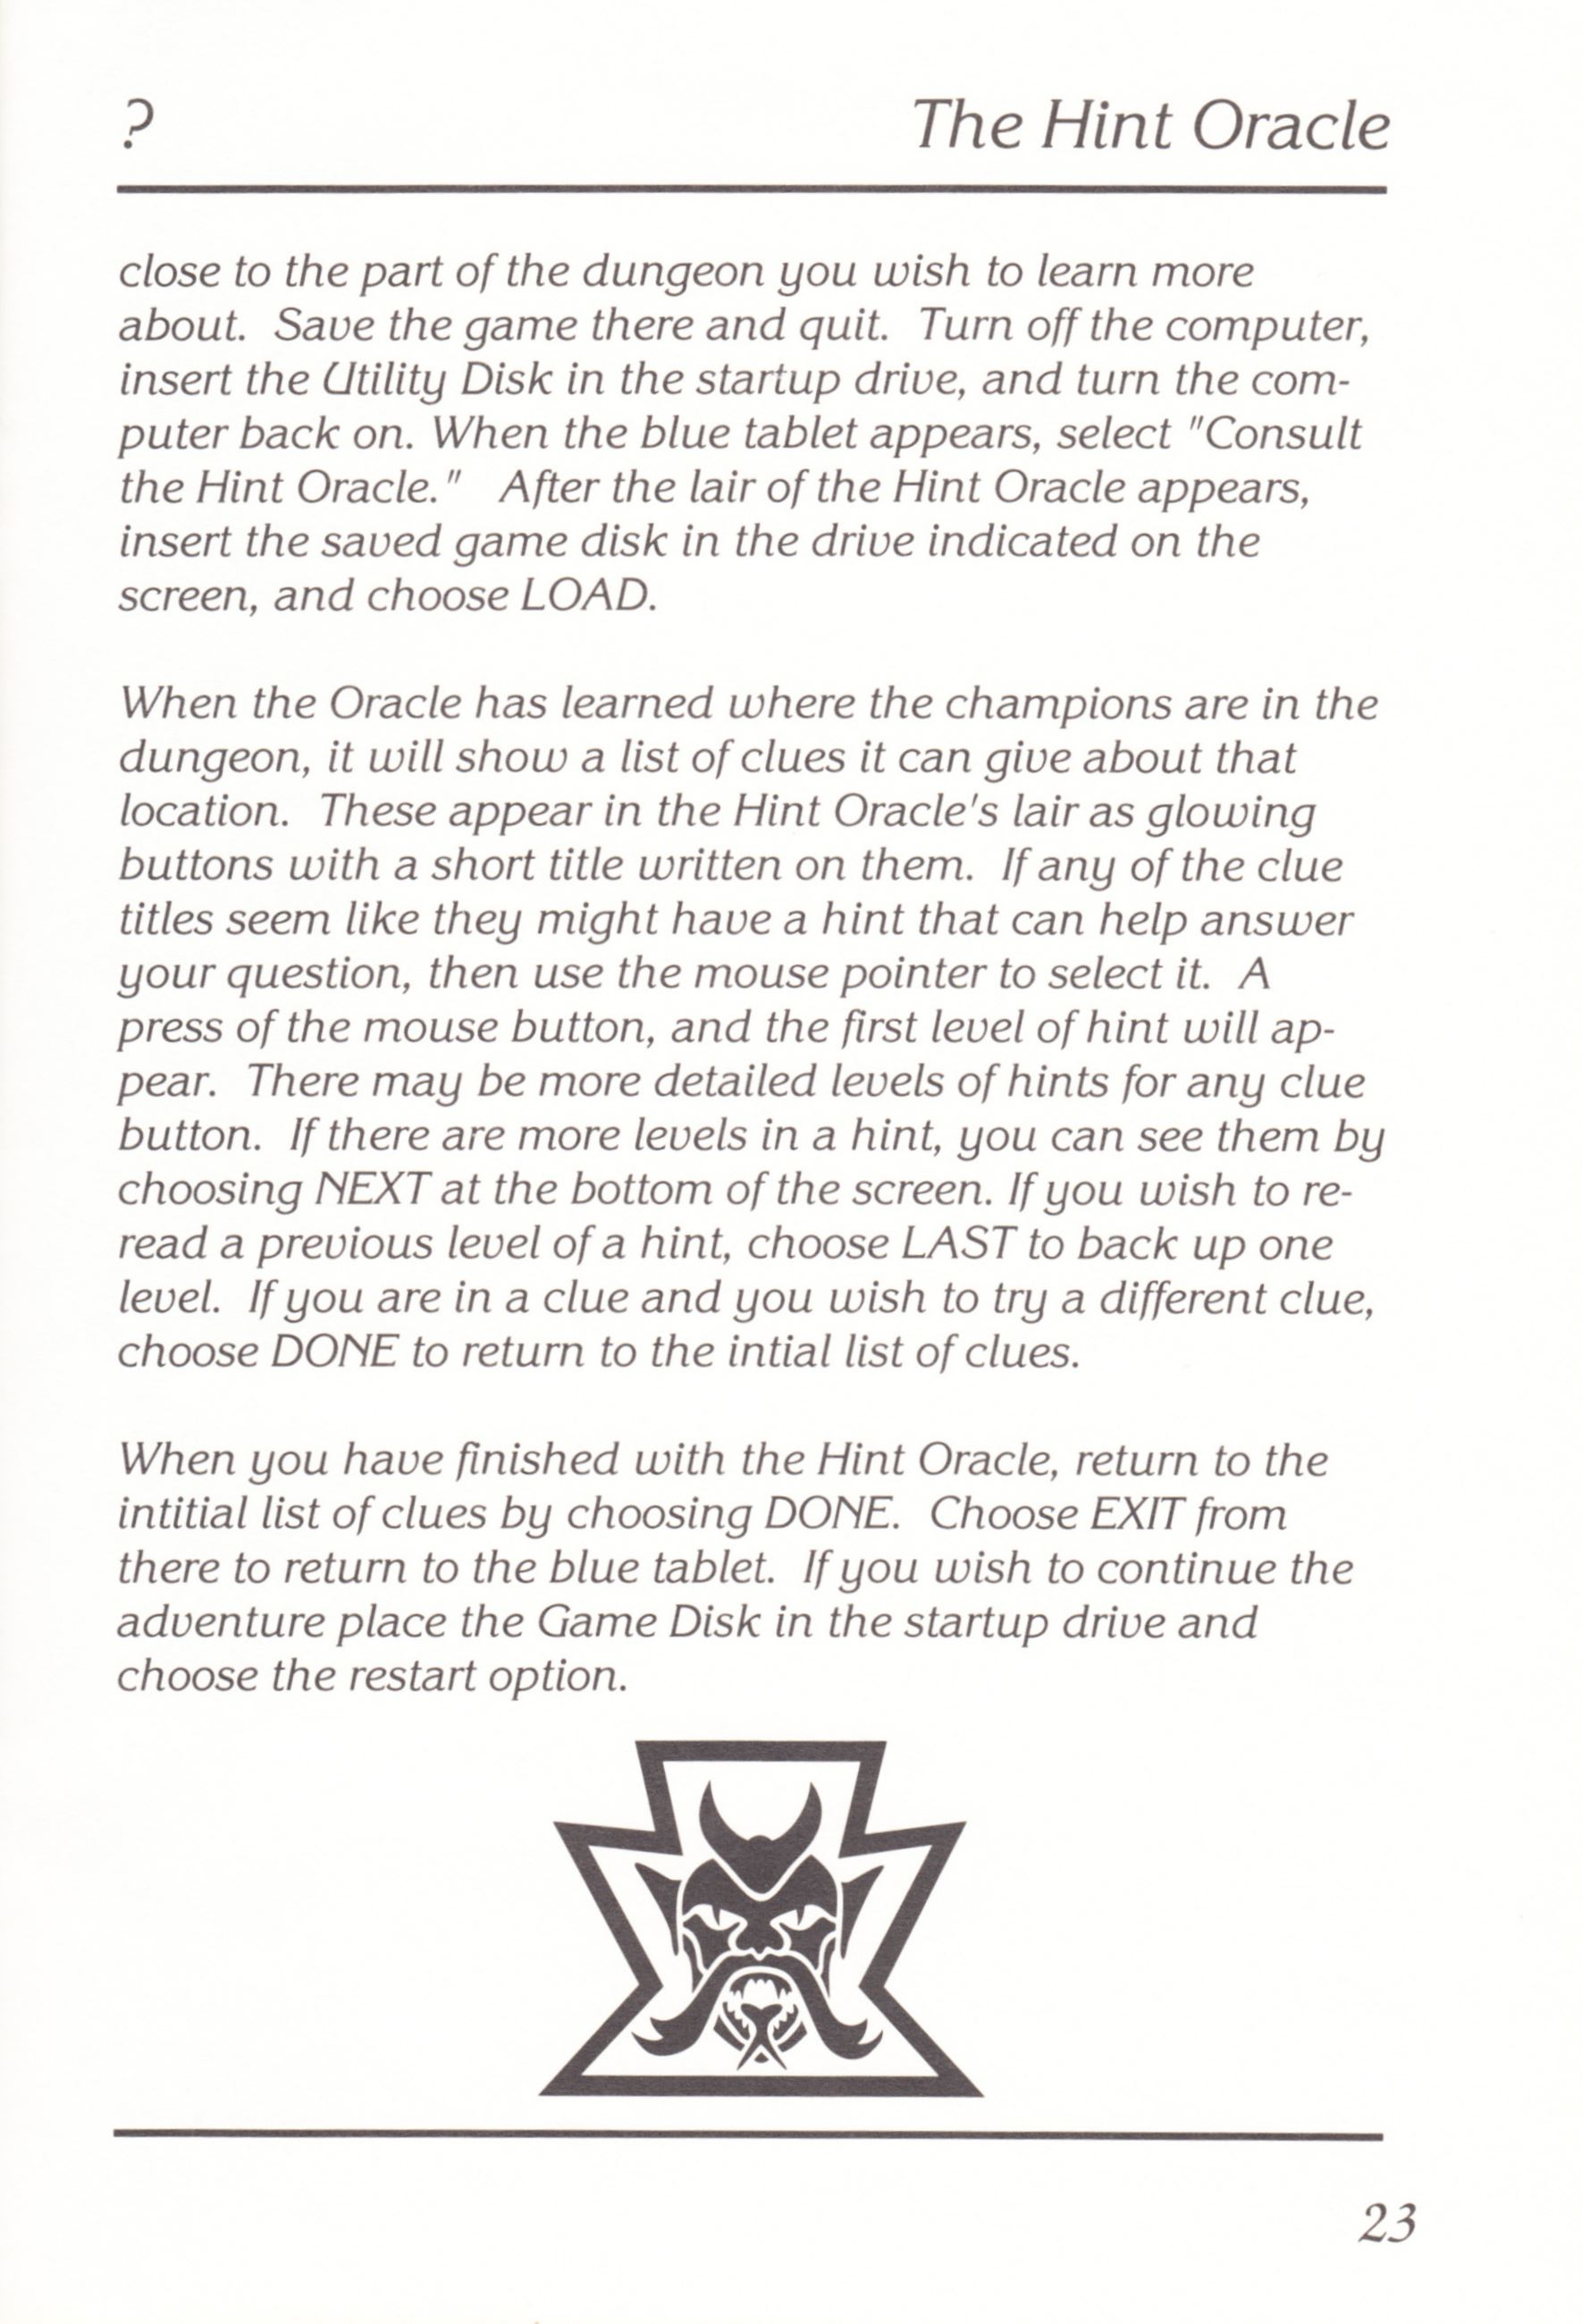 Game - Chaos Strikes Back - UK - Amiga - Manual - Page 025 - Scan